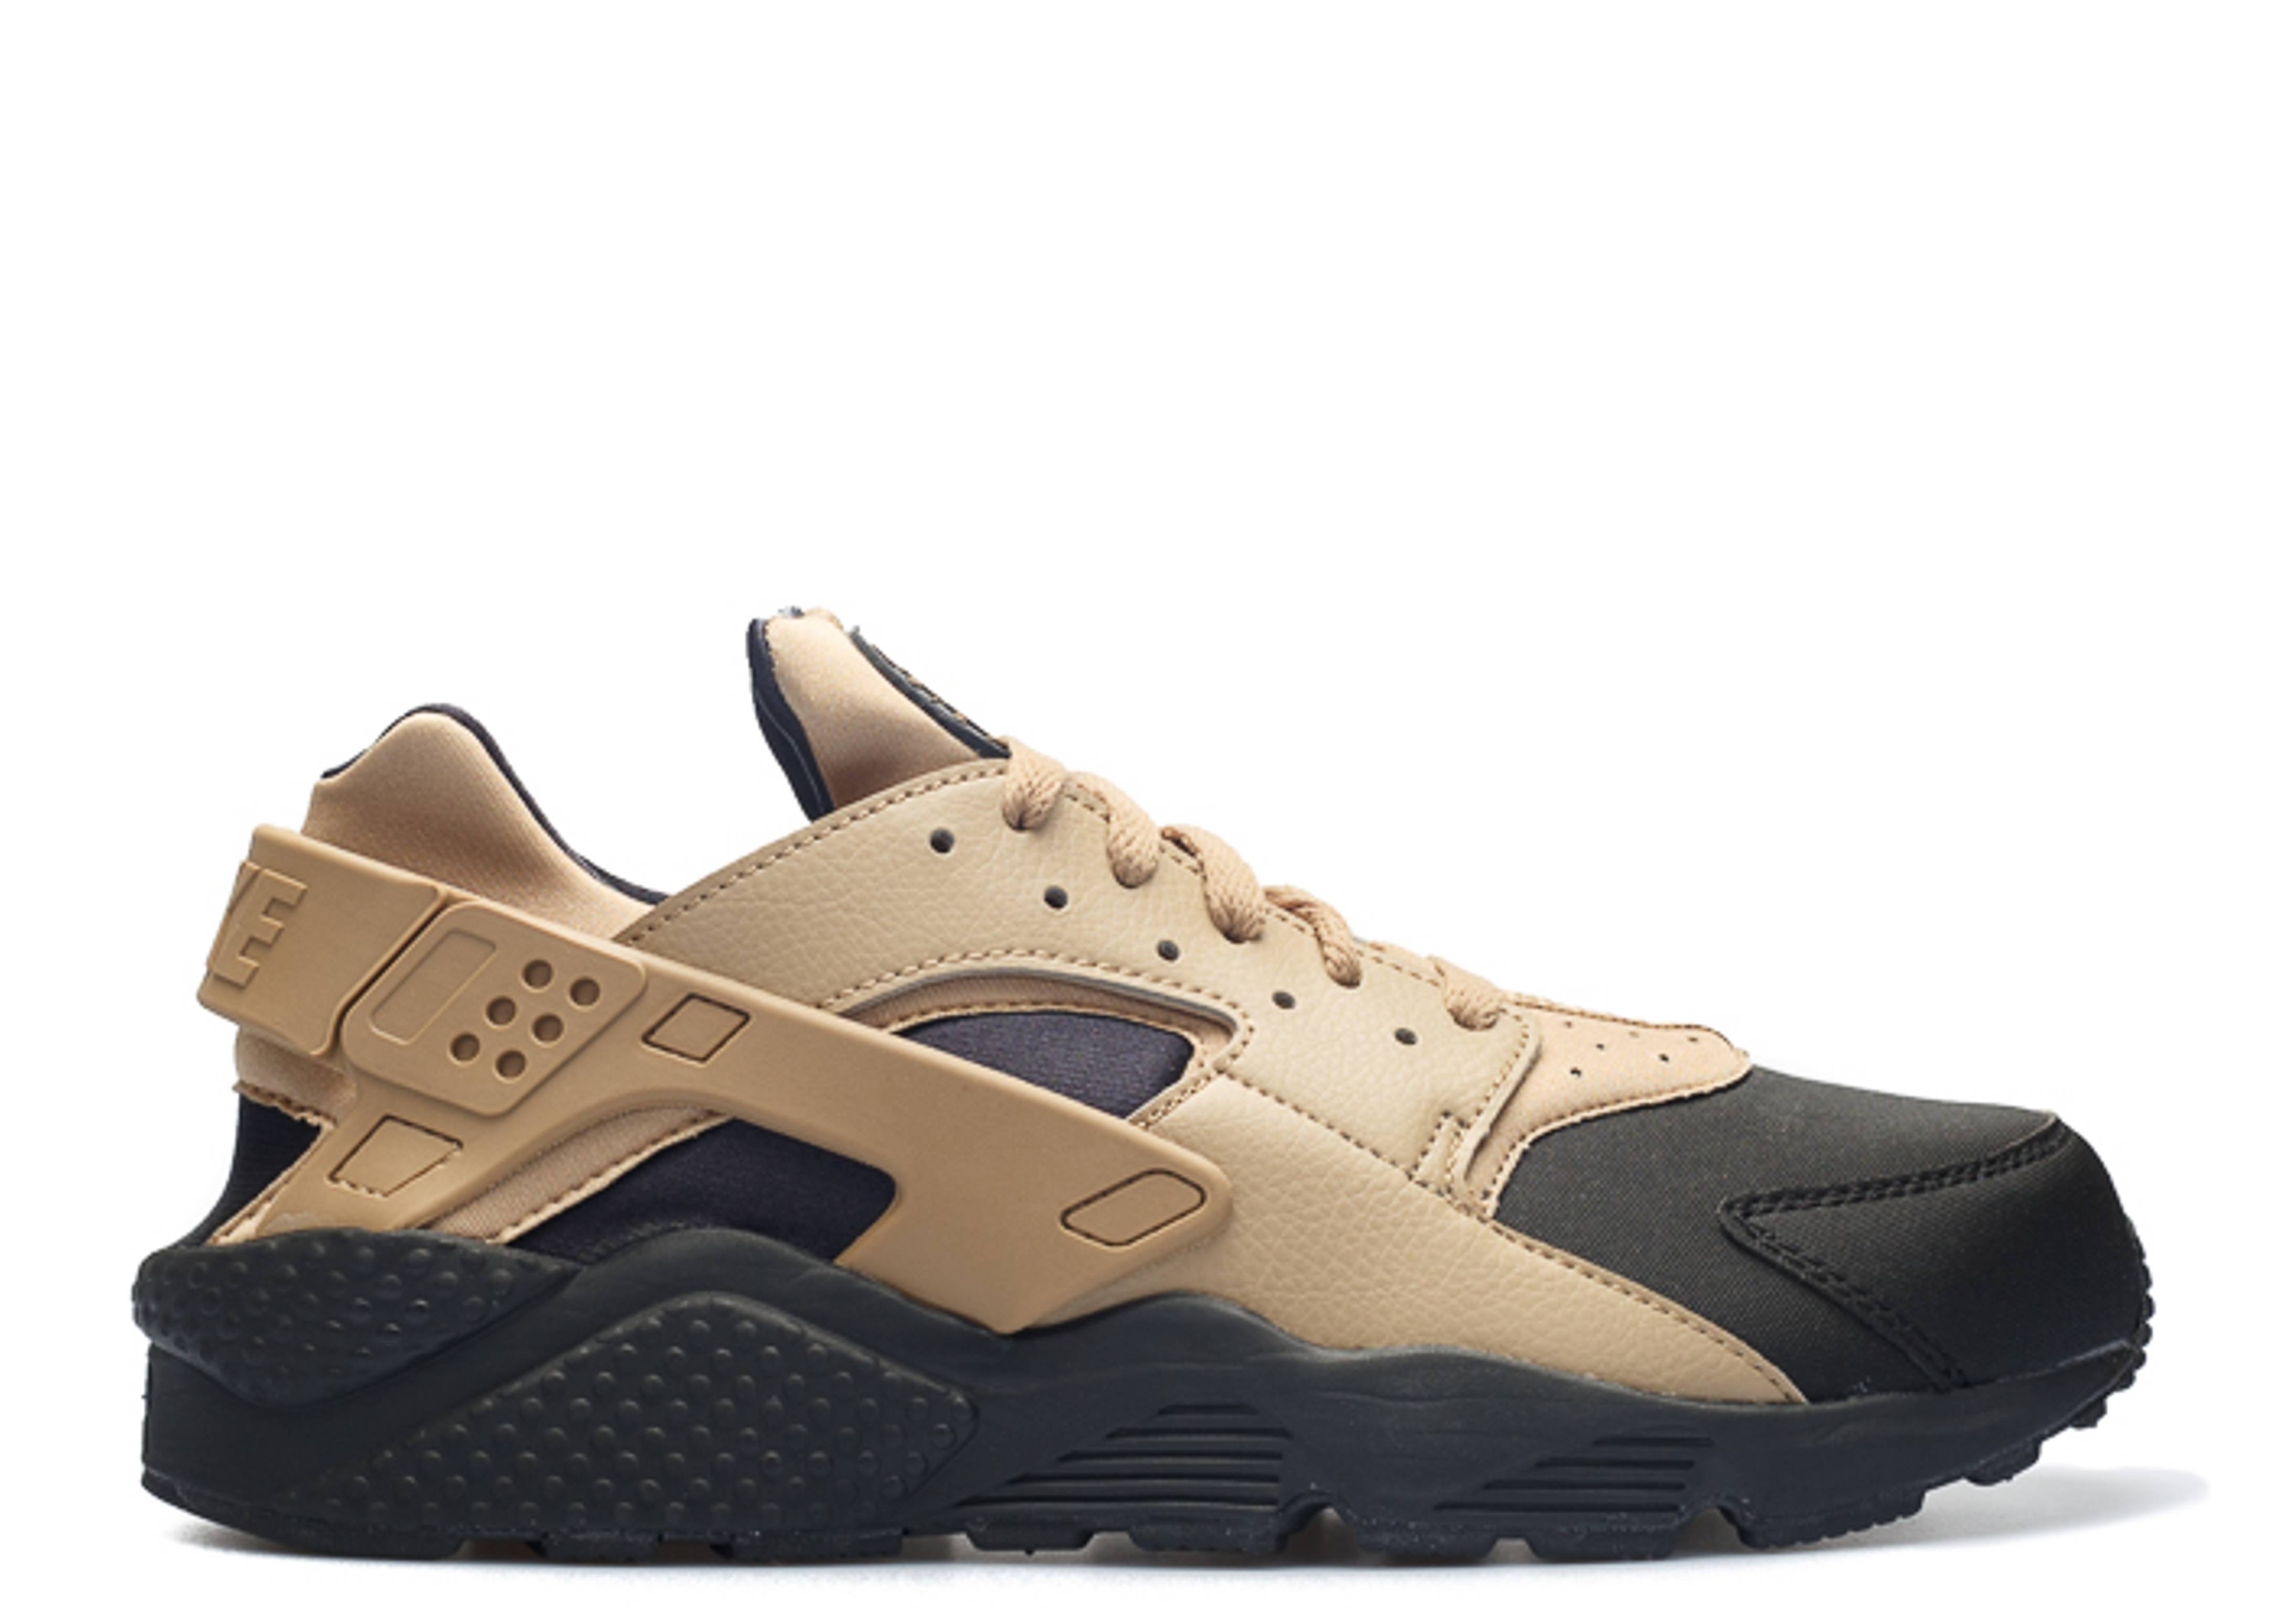 air huarache run prm black desert camo desert camo. Black Bedroom Furniture Sets. Home Design Ideas